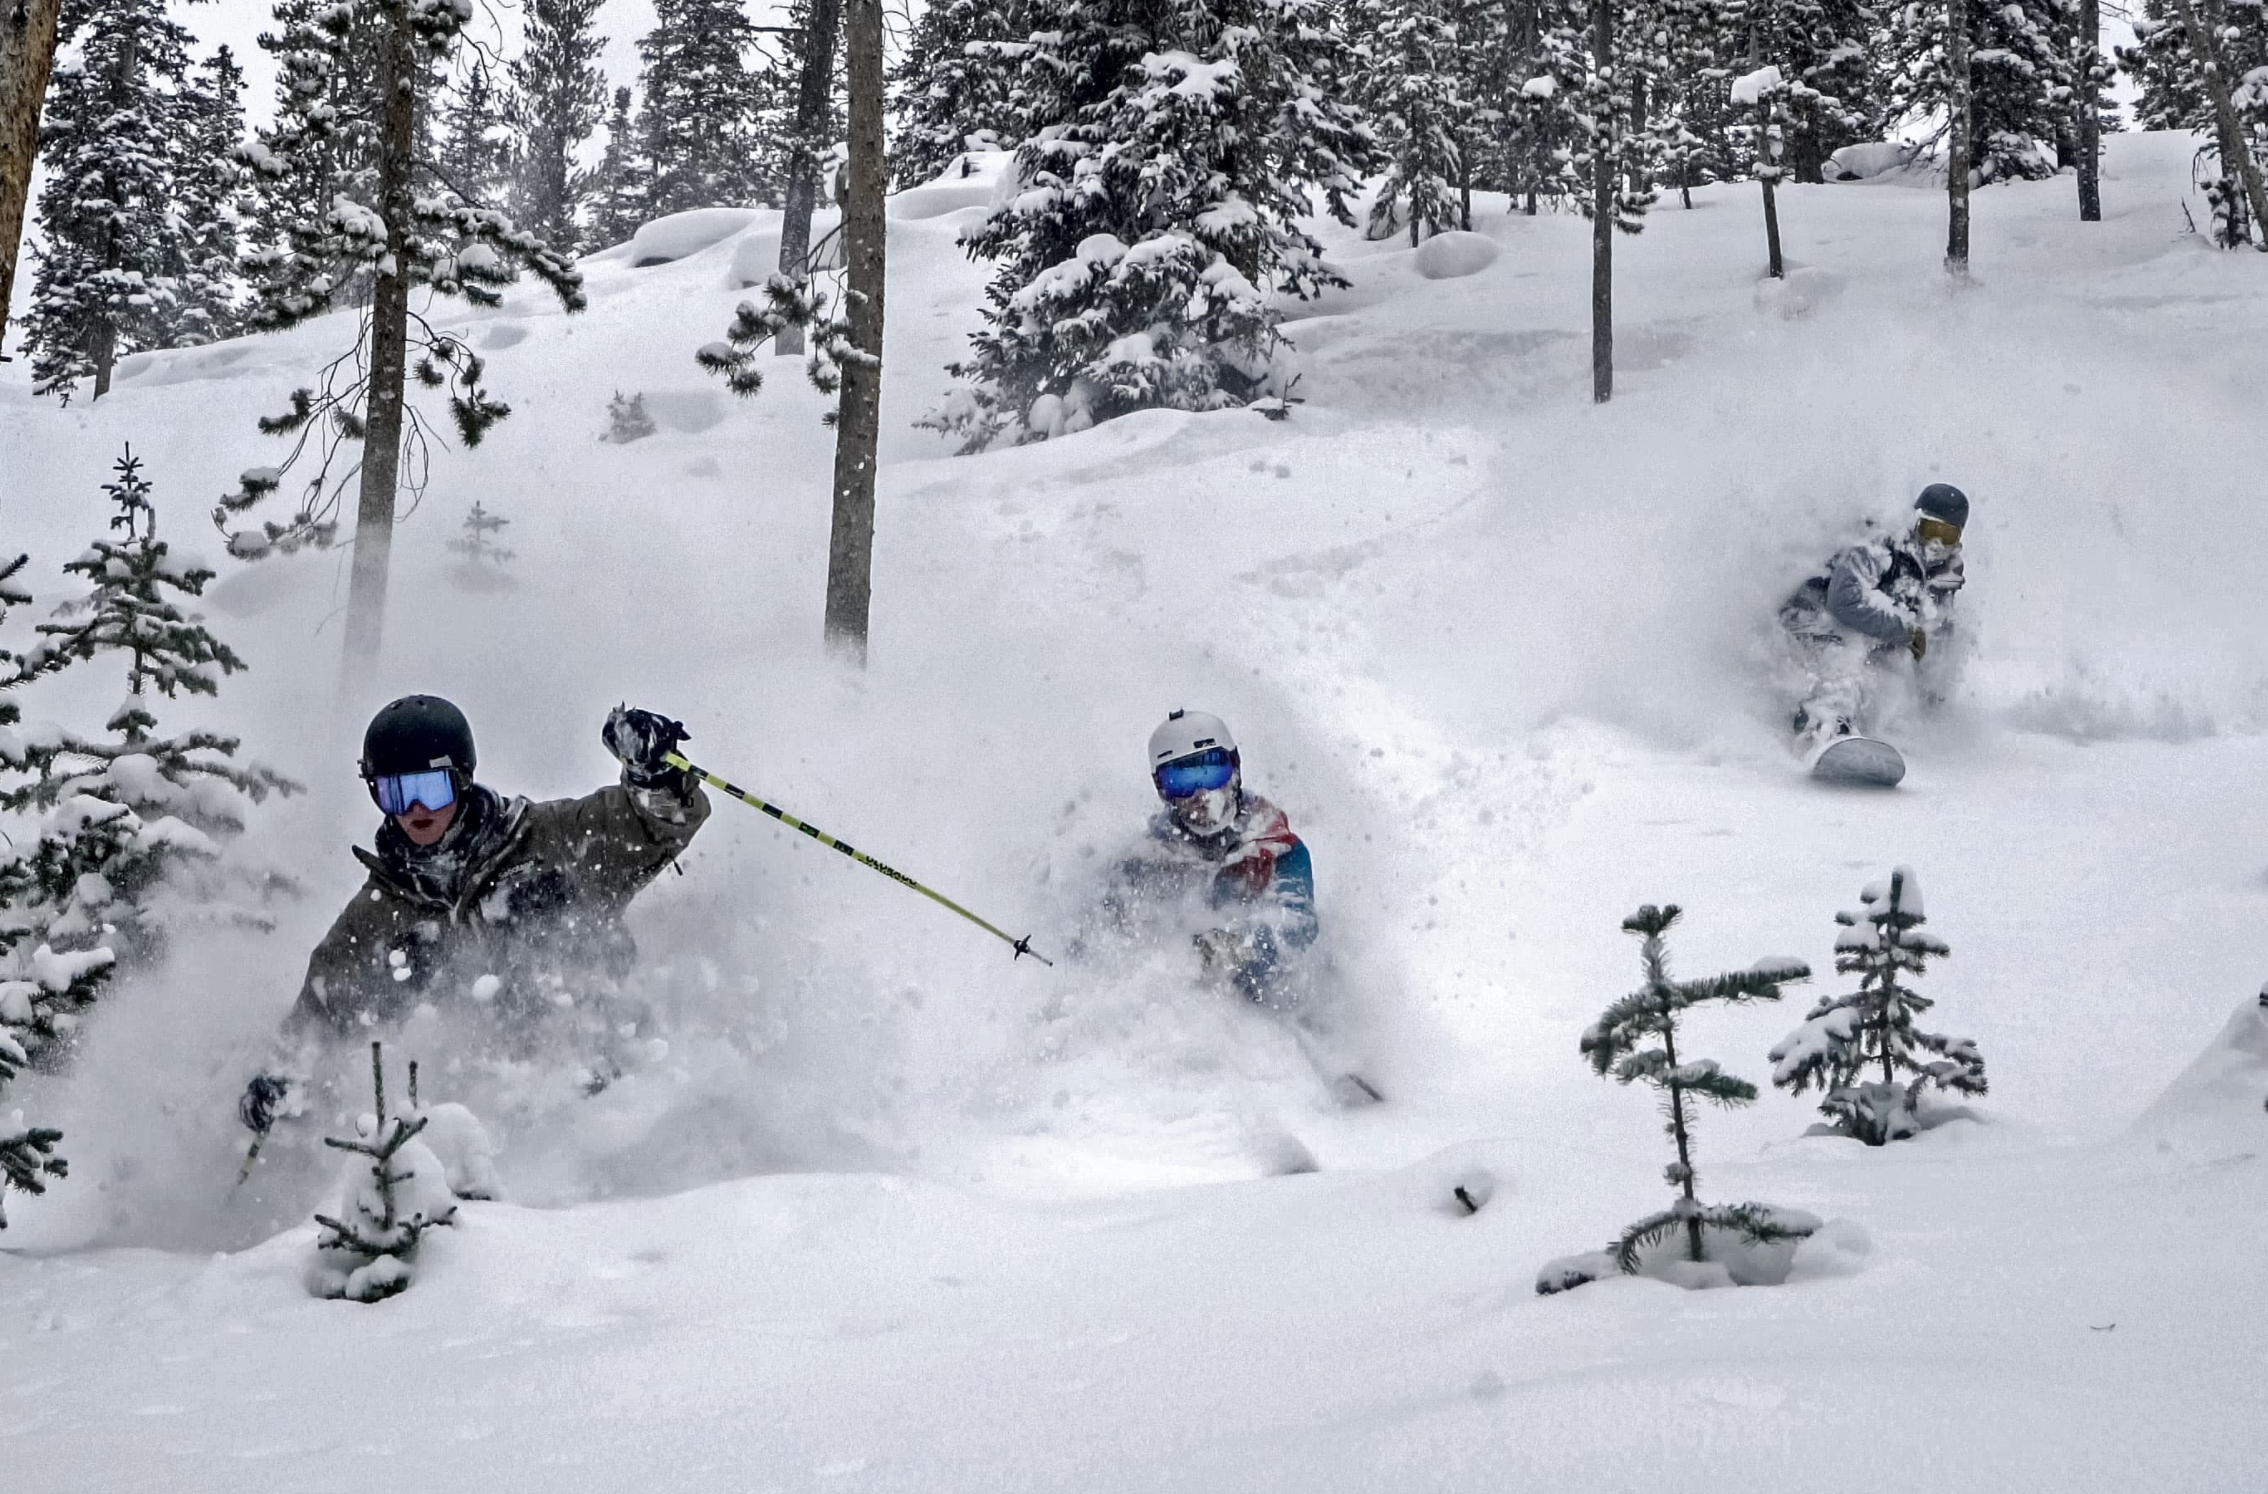 Skiing Company Merger Affects Several Colorado Resorts